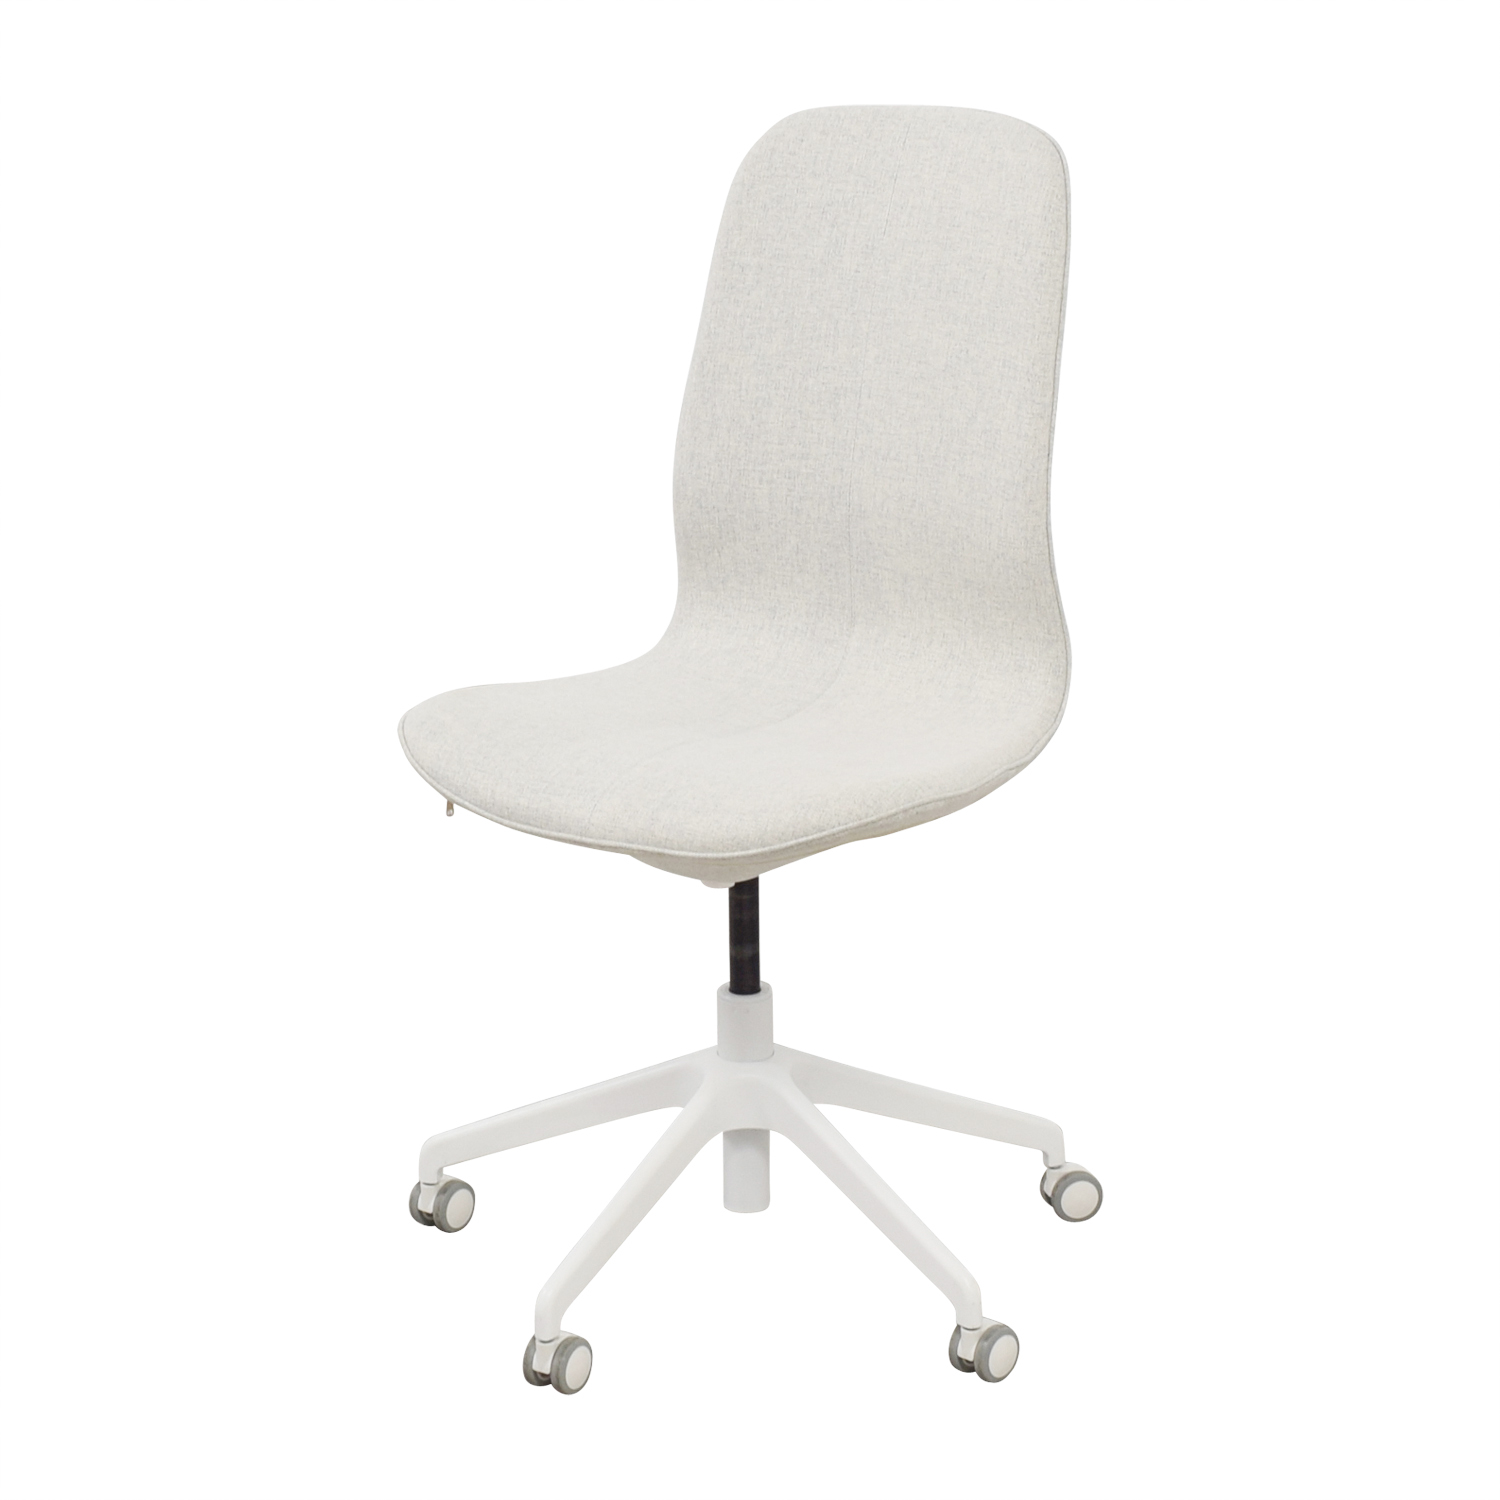 White Chairs Ikea Office Chairs Set. Shop Ikea Langfjall Swivel Chair Home  Office Chairs White